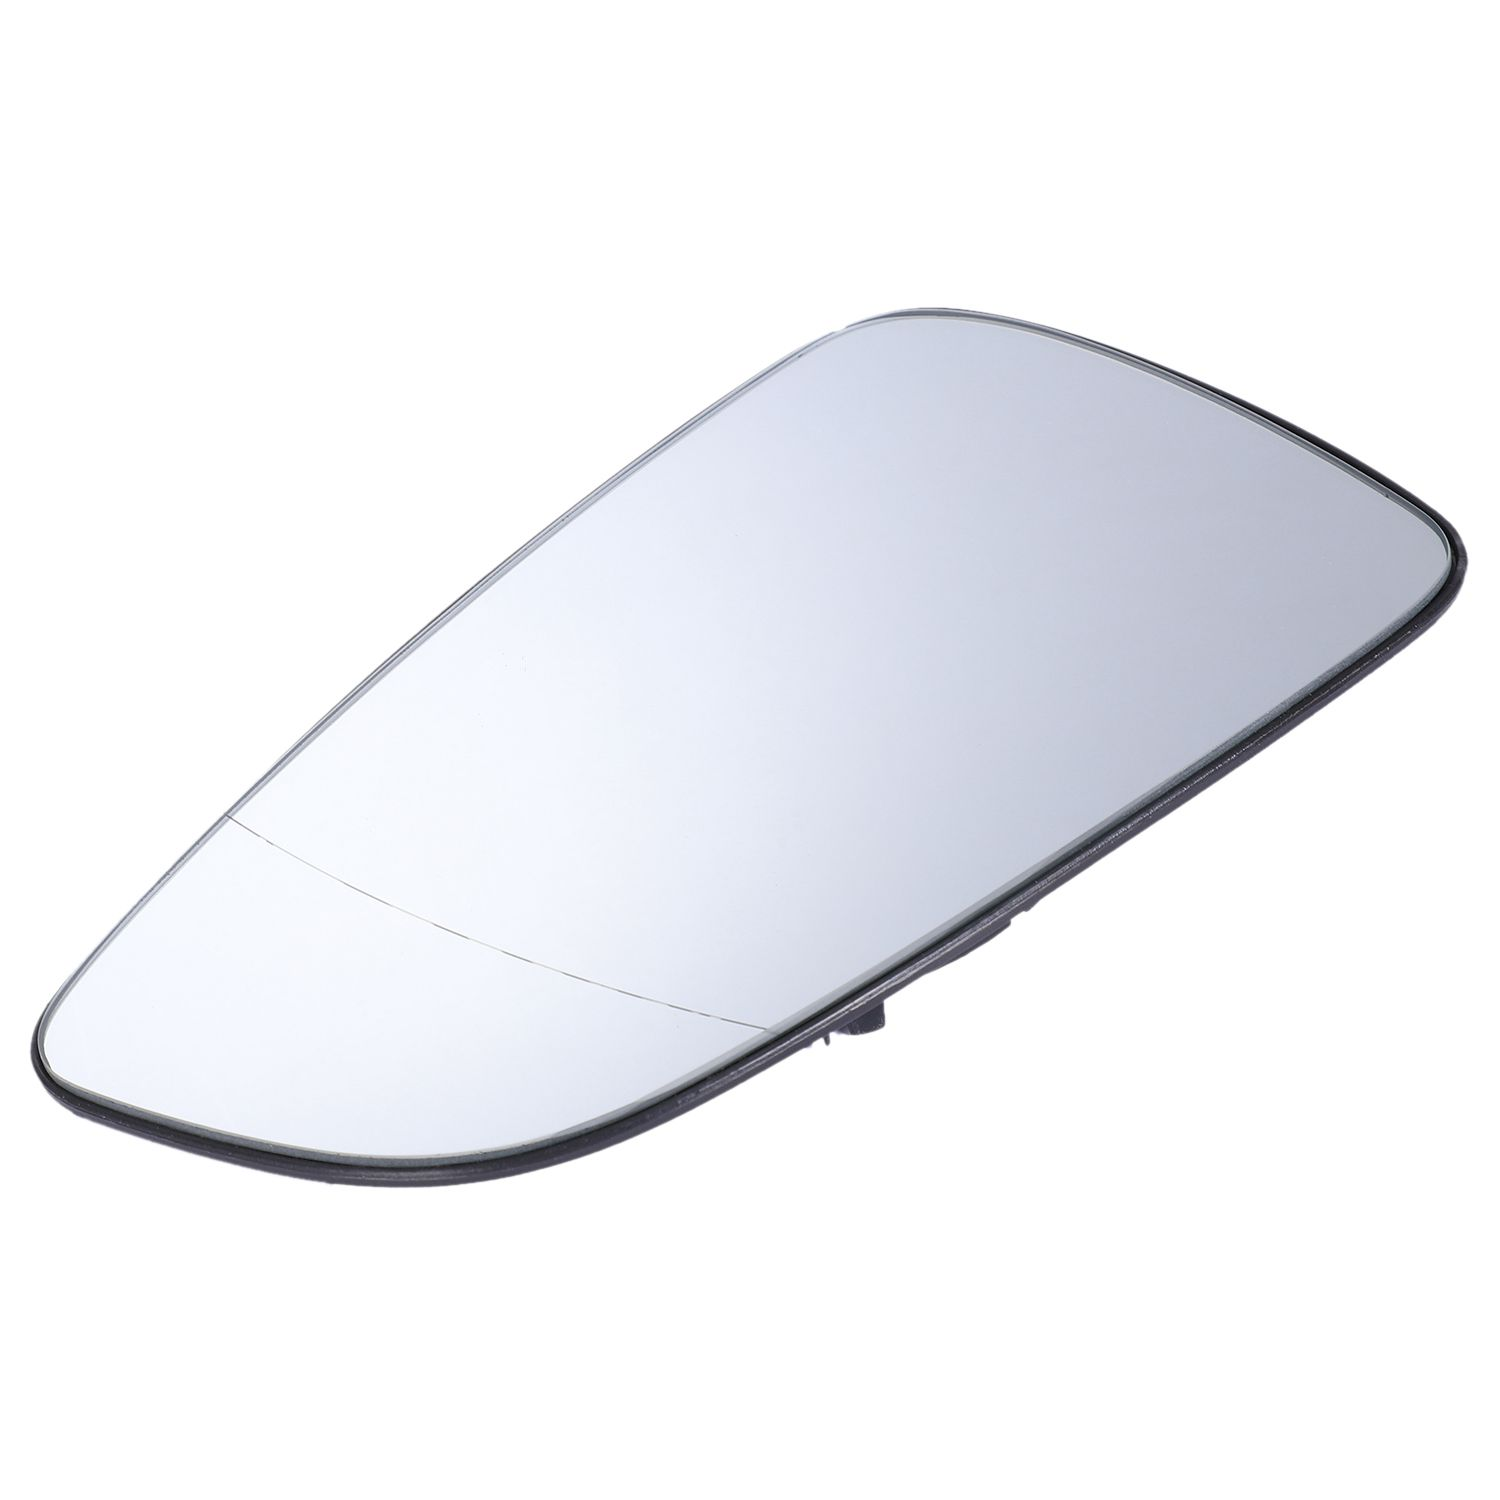 NEW Car Right Passenger Side Wing Door Mirror Glass for Opel Astra 2004-2008